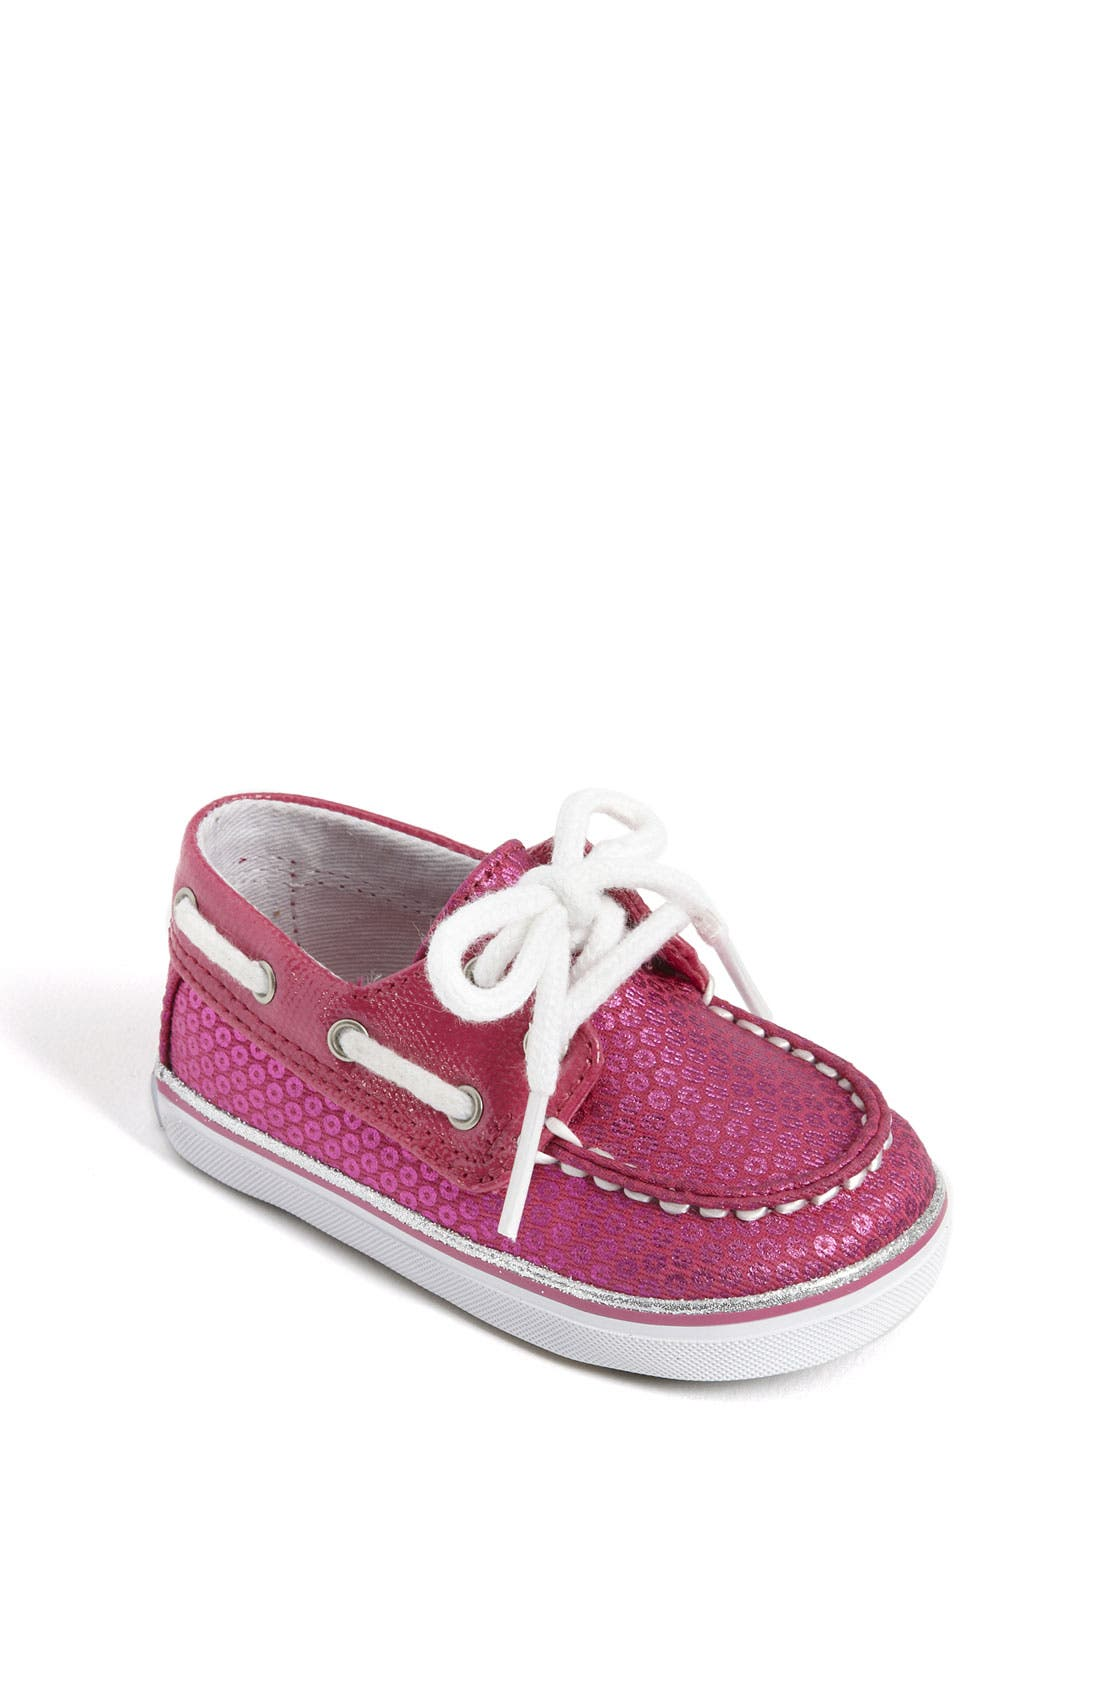 Alternate Image 1 Selected - Sperry Top-Sider® 'Bahama' Crib Shoe (Baby)